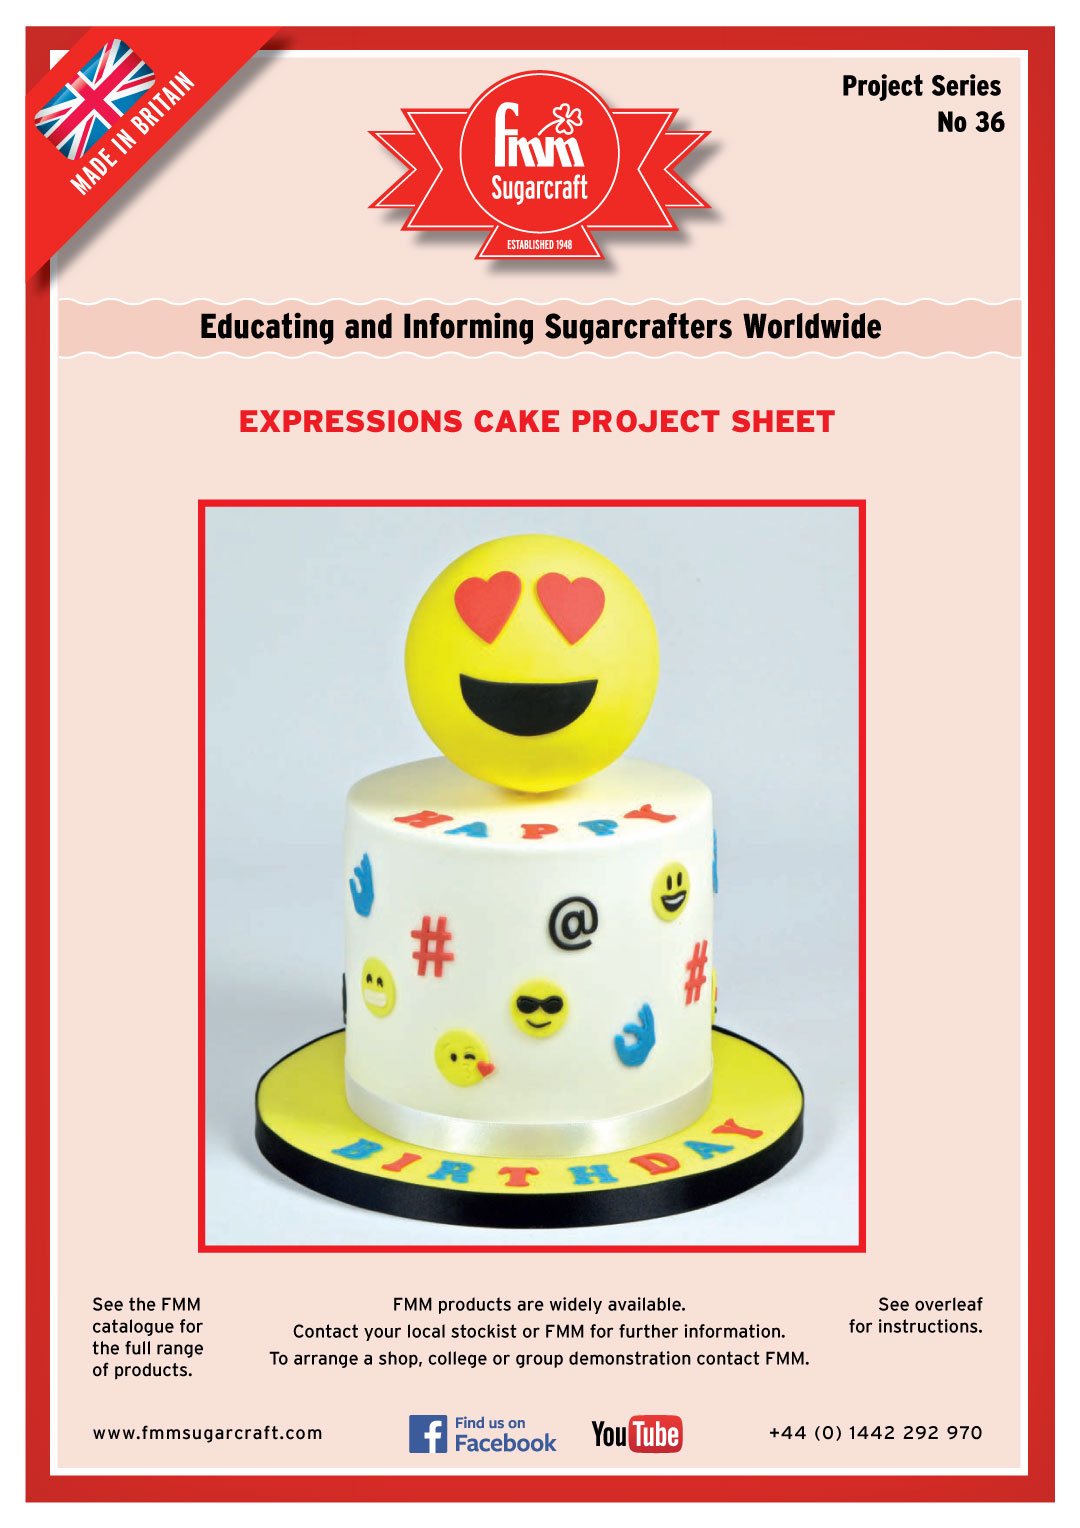 Make an Expressions Cake